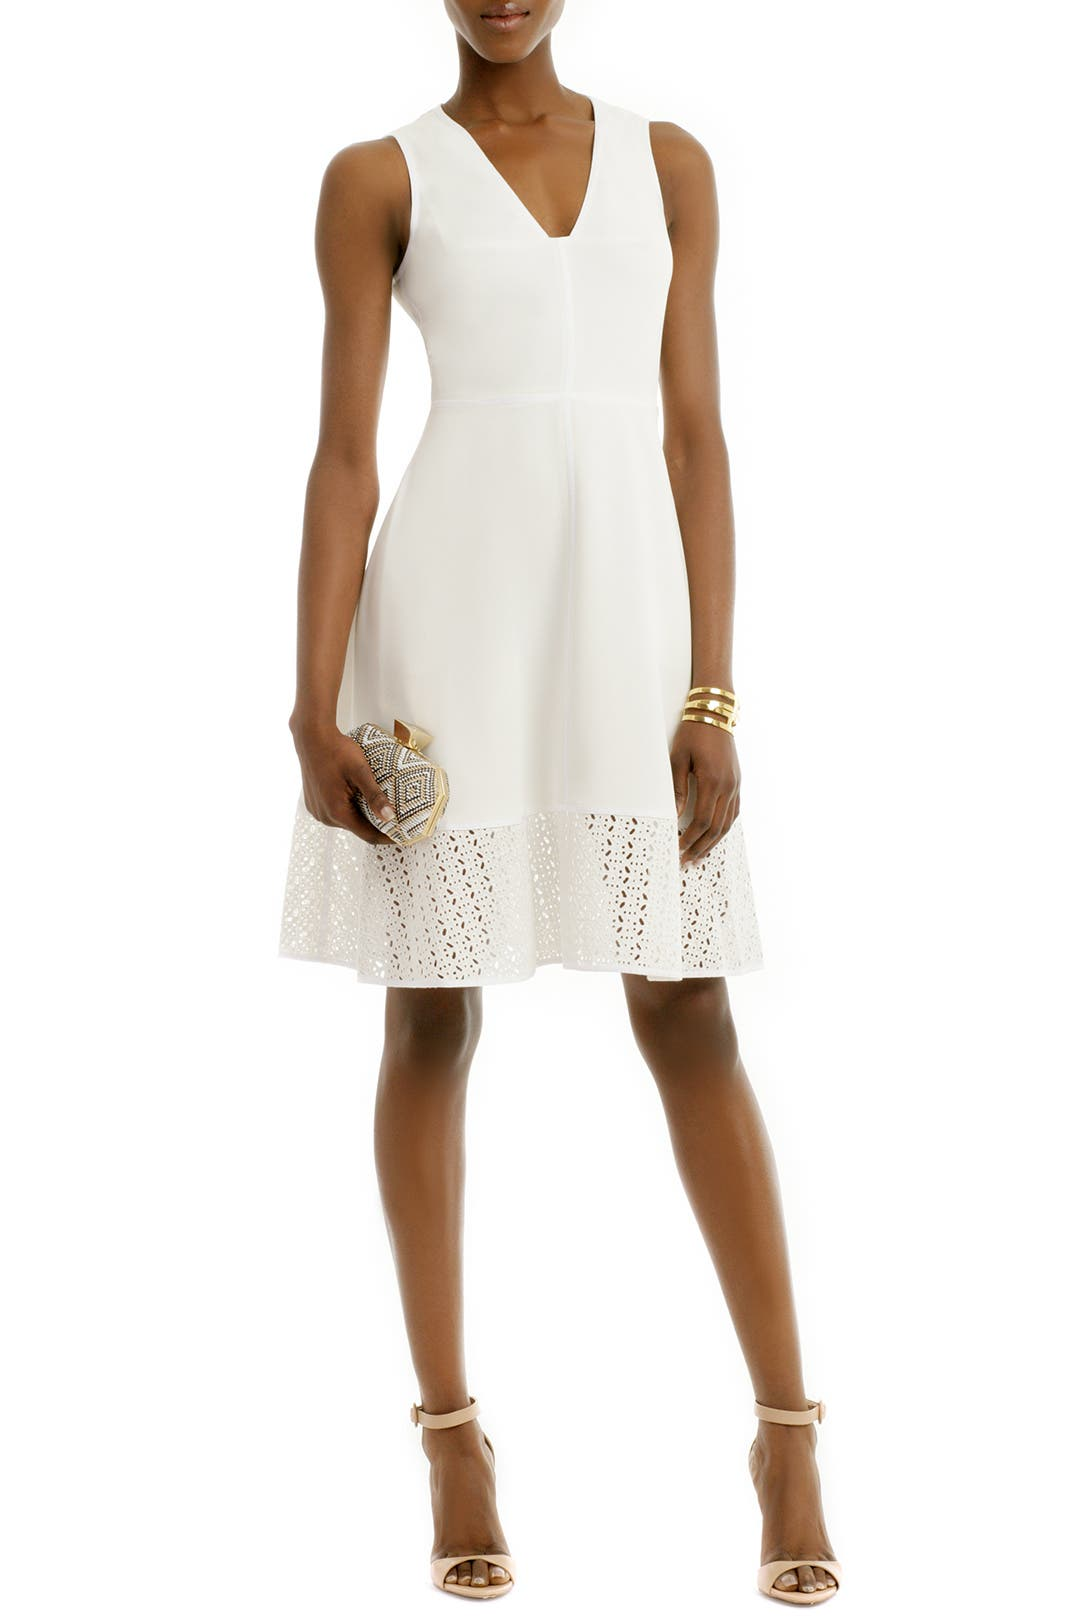 Eye to Eye Dress by Rachel Roy